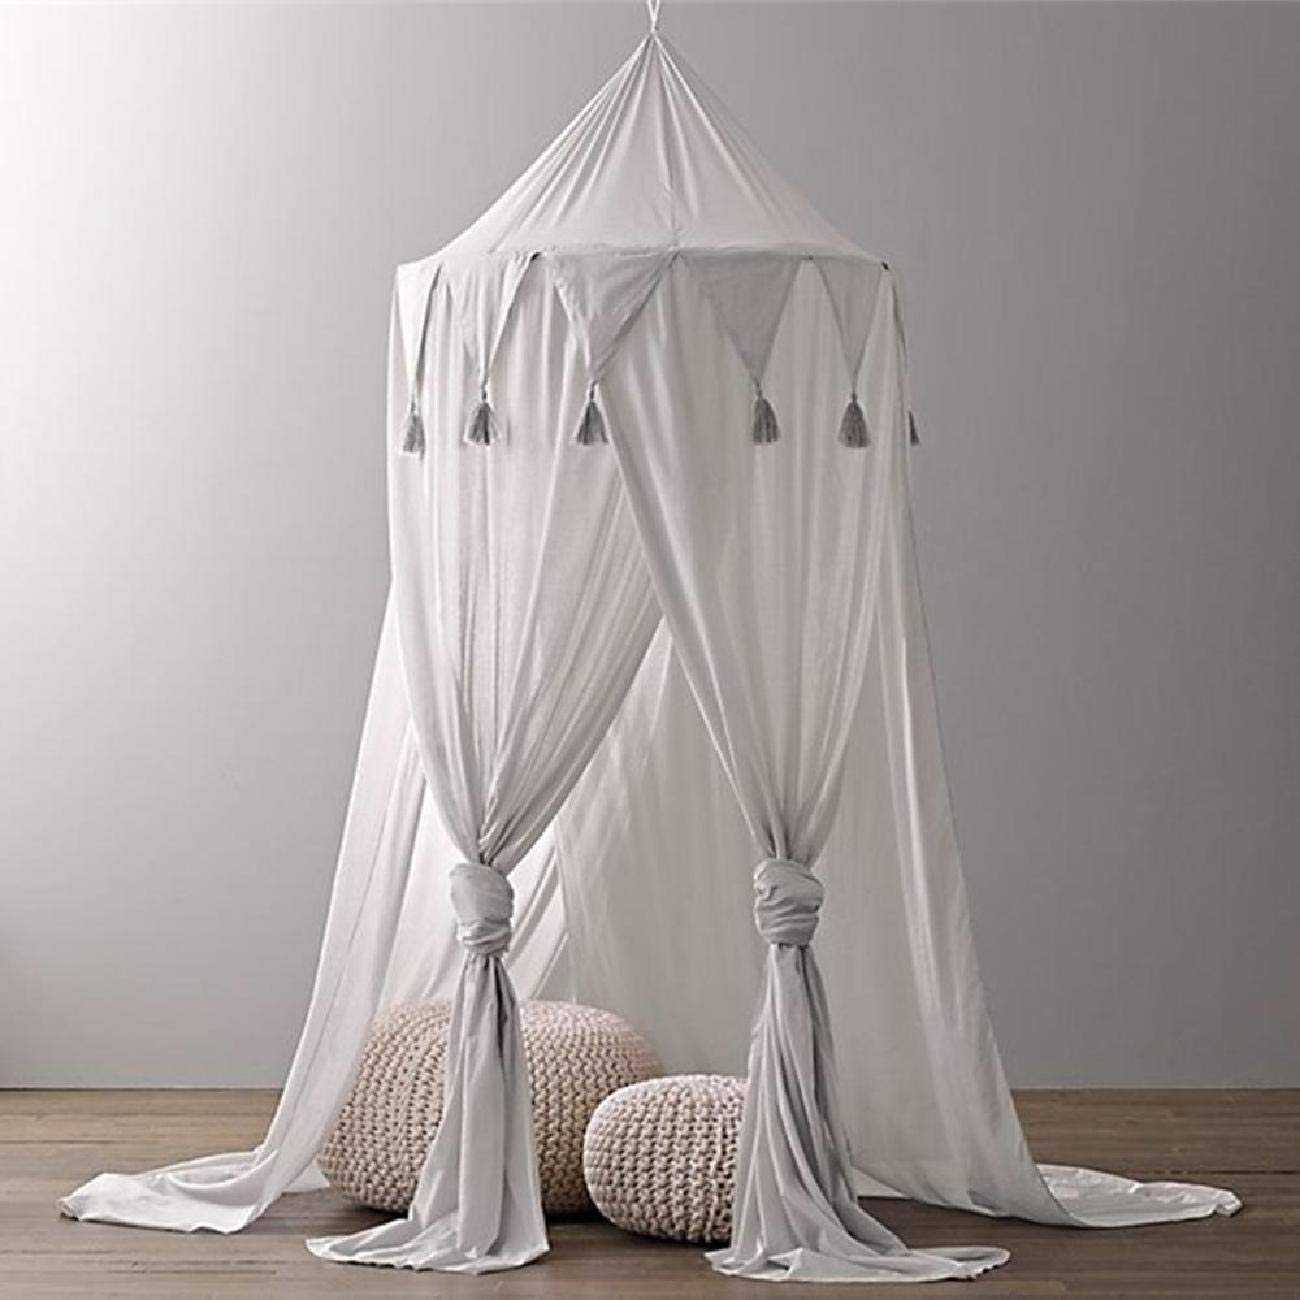 Bed Canopy, Chiffon Reading Nook Tent Dome Triangle Tassel Net with Assembly Tools Bedroom Decoration Indoor Game House for Kids (Grey)